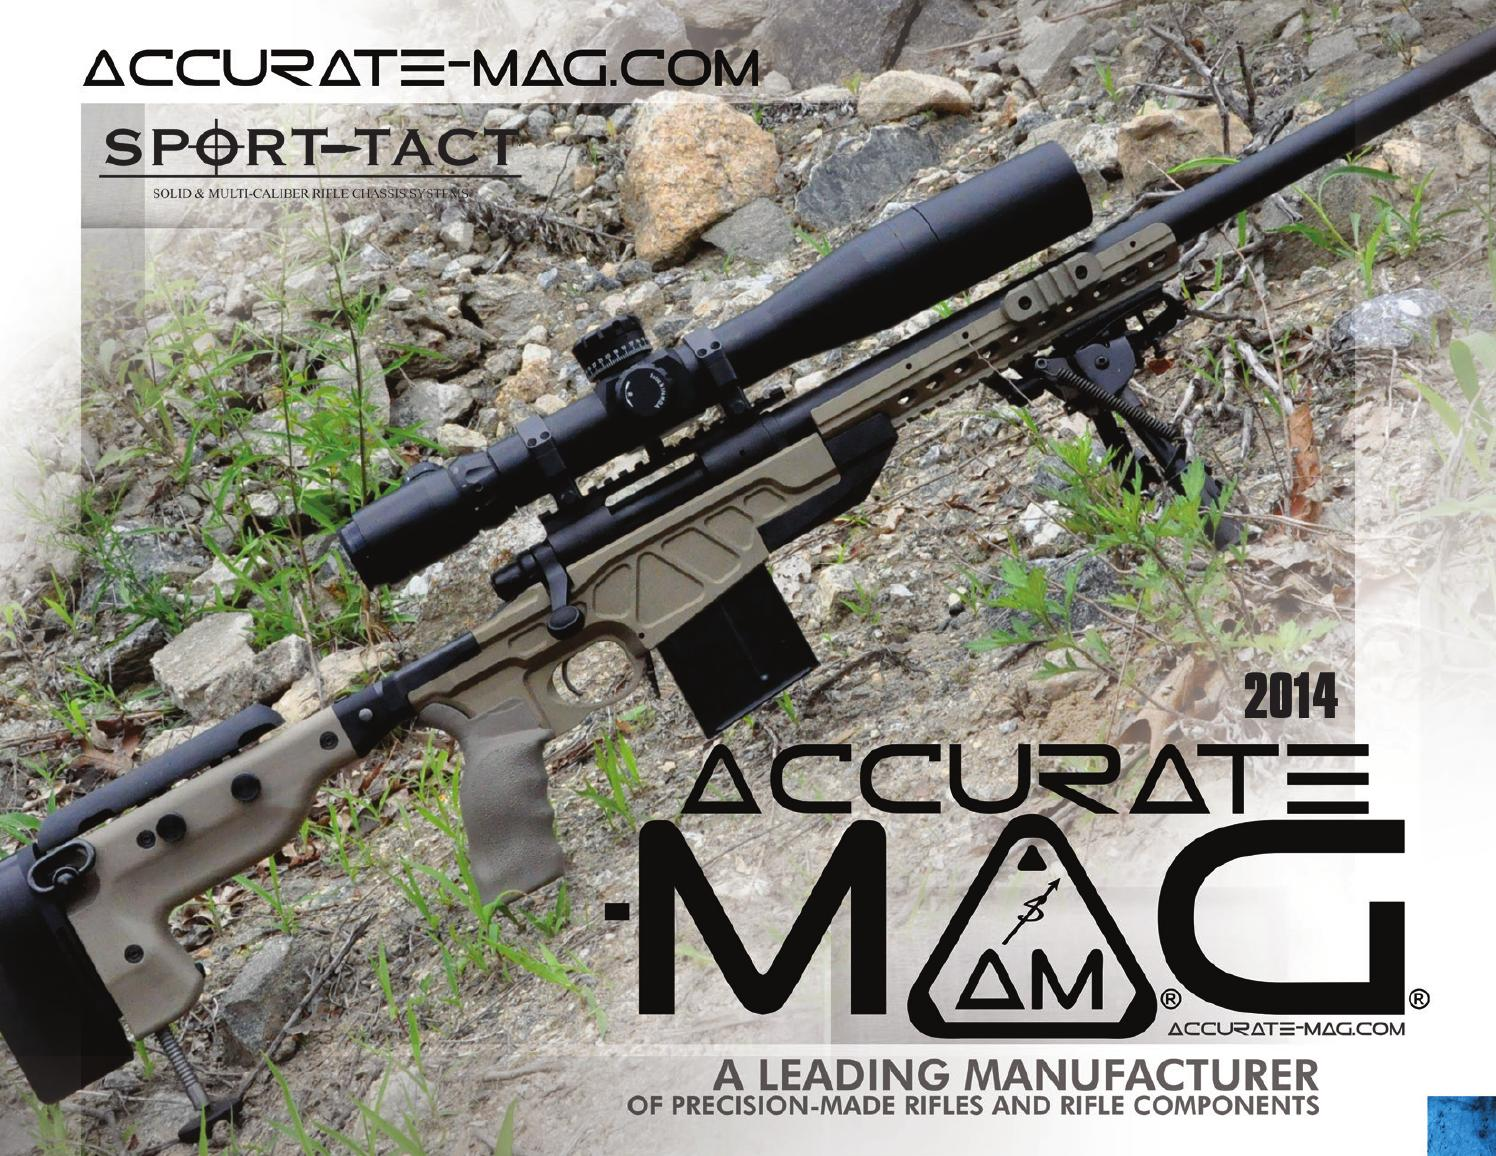 Accurate Mag Catalog 2014 by Accurate-Mag - issuu